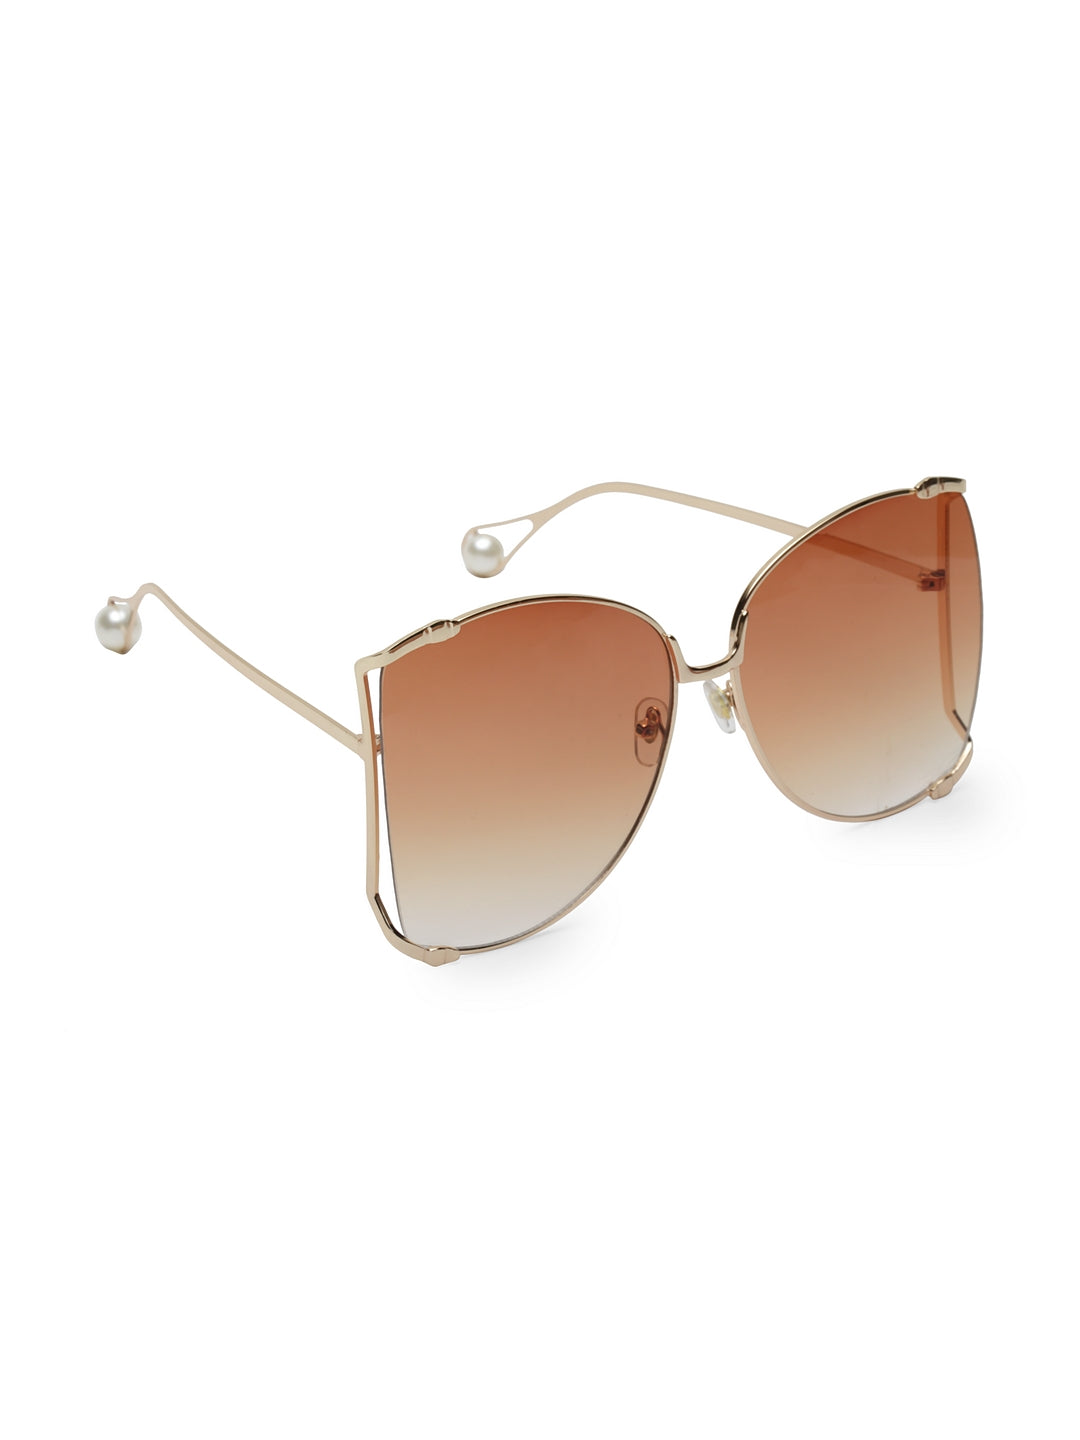 Avant-Garde Paris Luxury Semi-Rimless Women Sunglasses with Oversized Lens